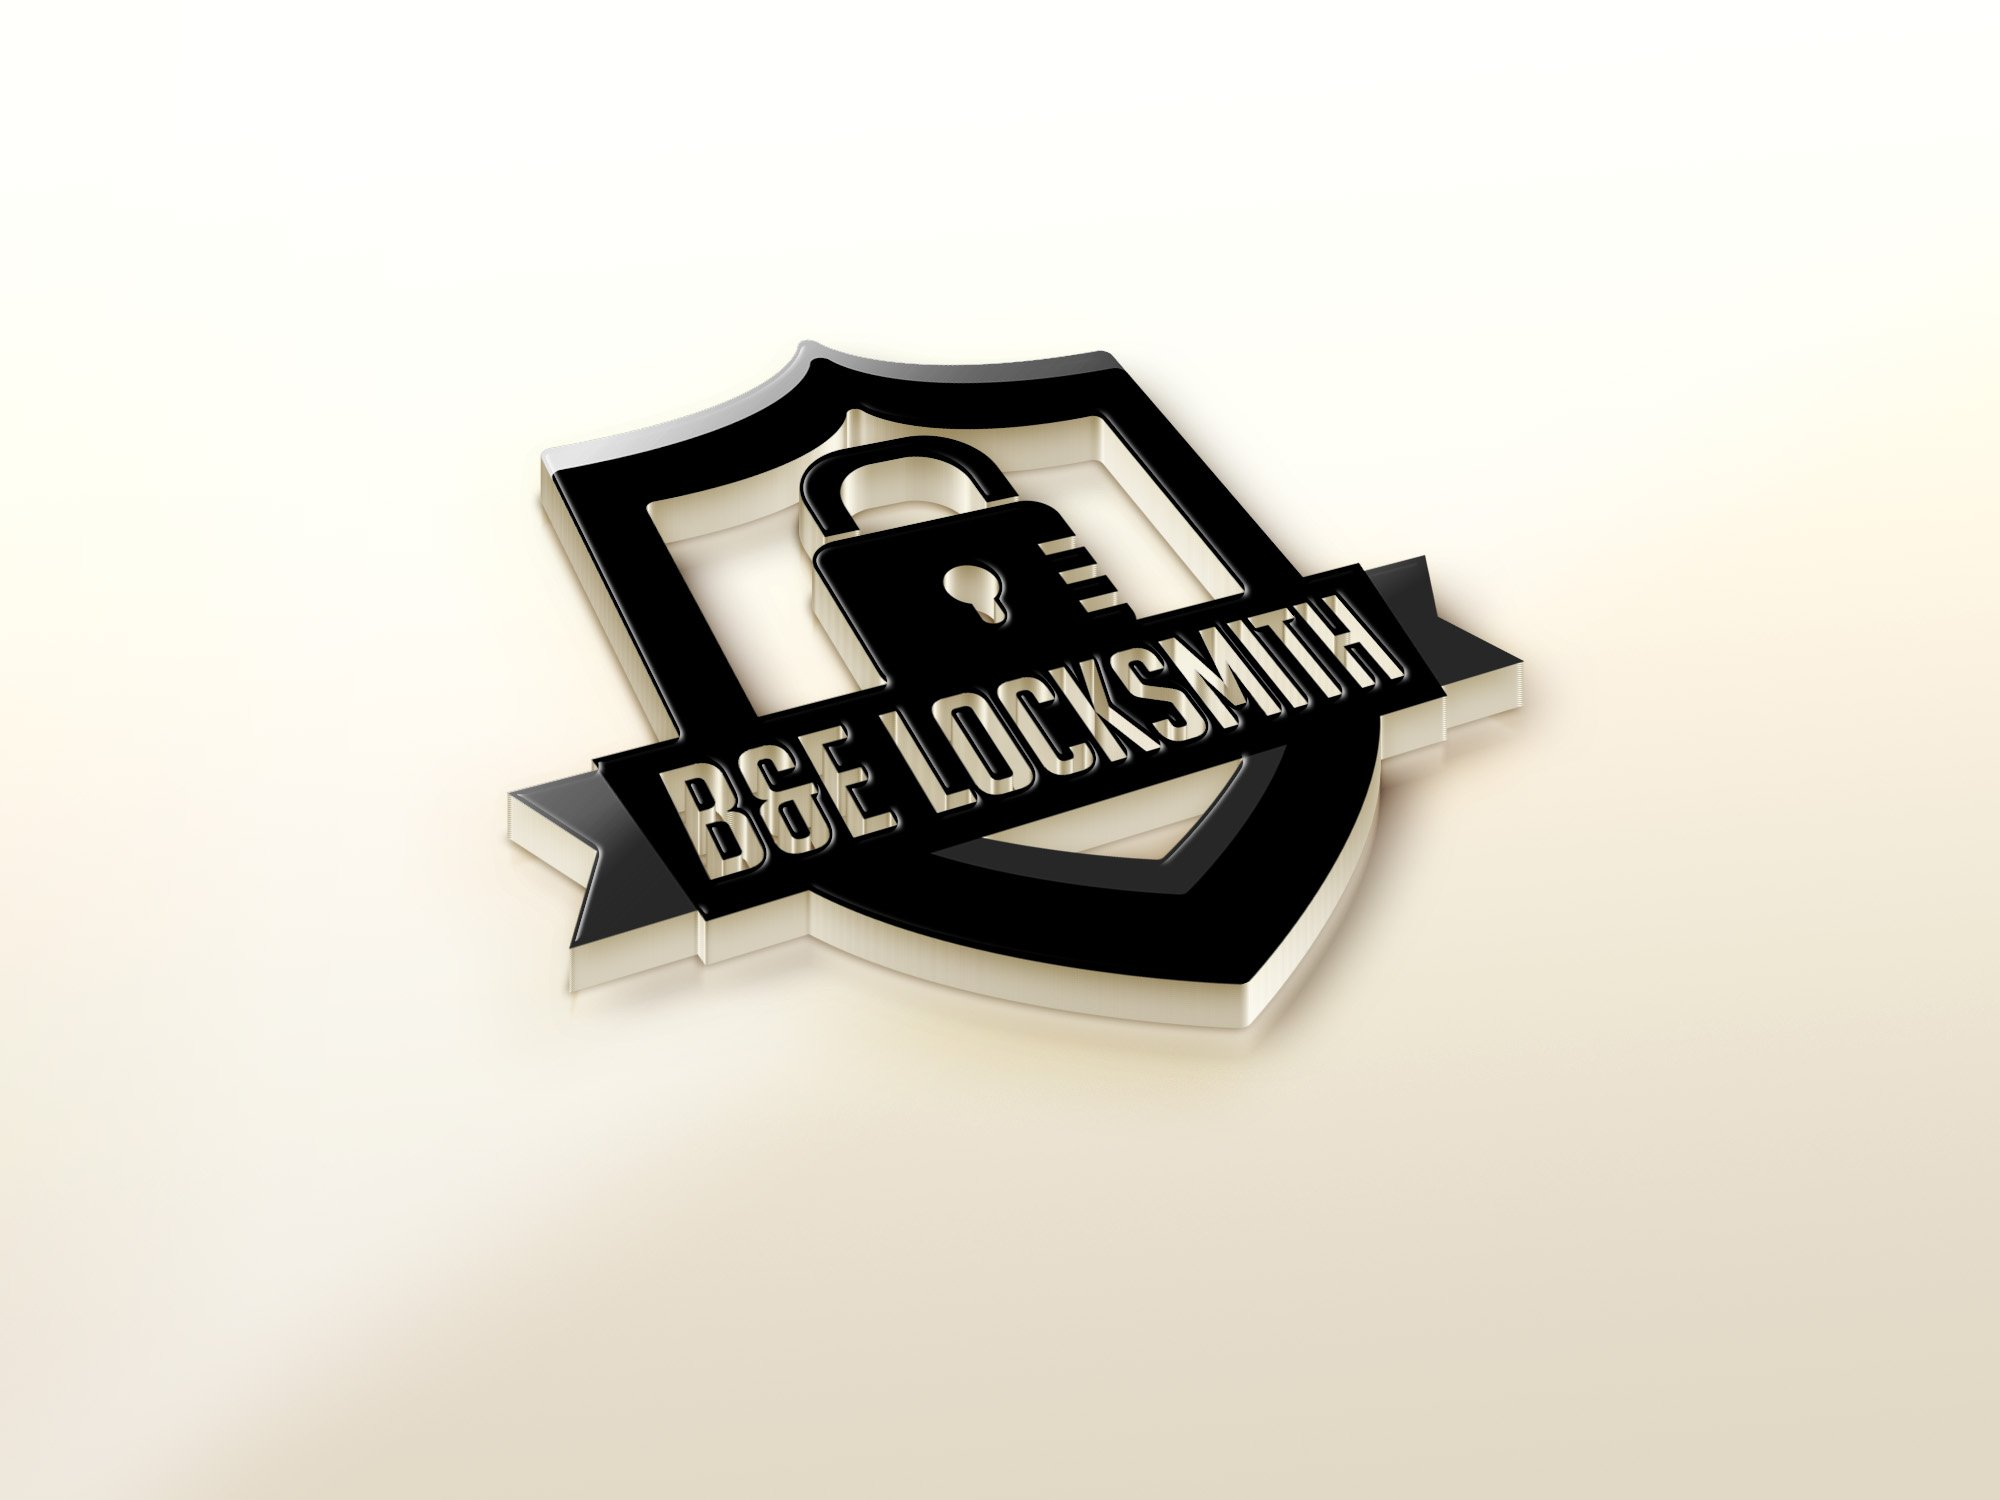 B&E Locksmith Promo